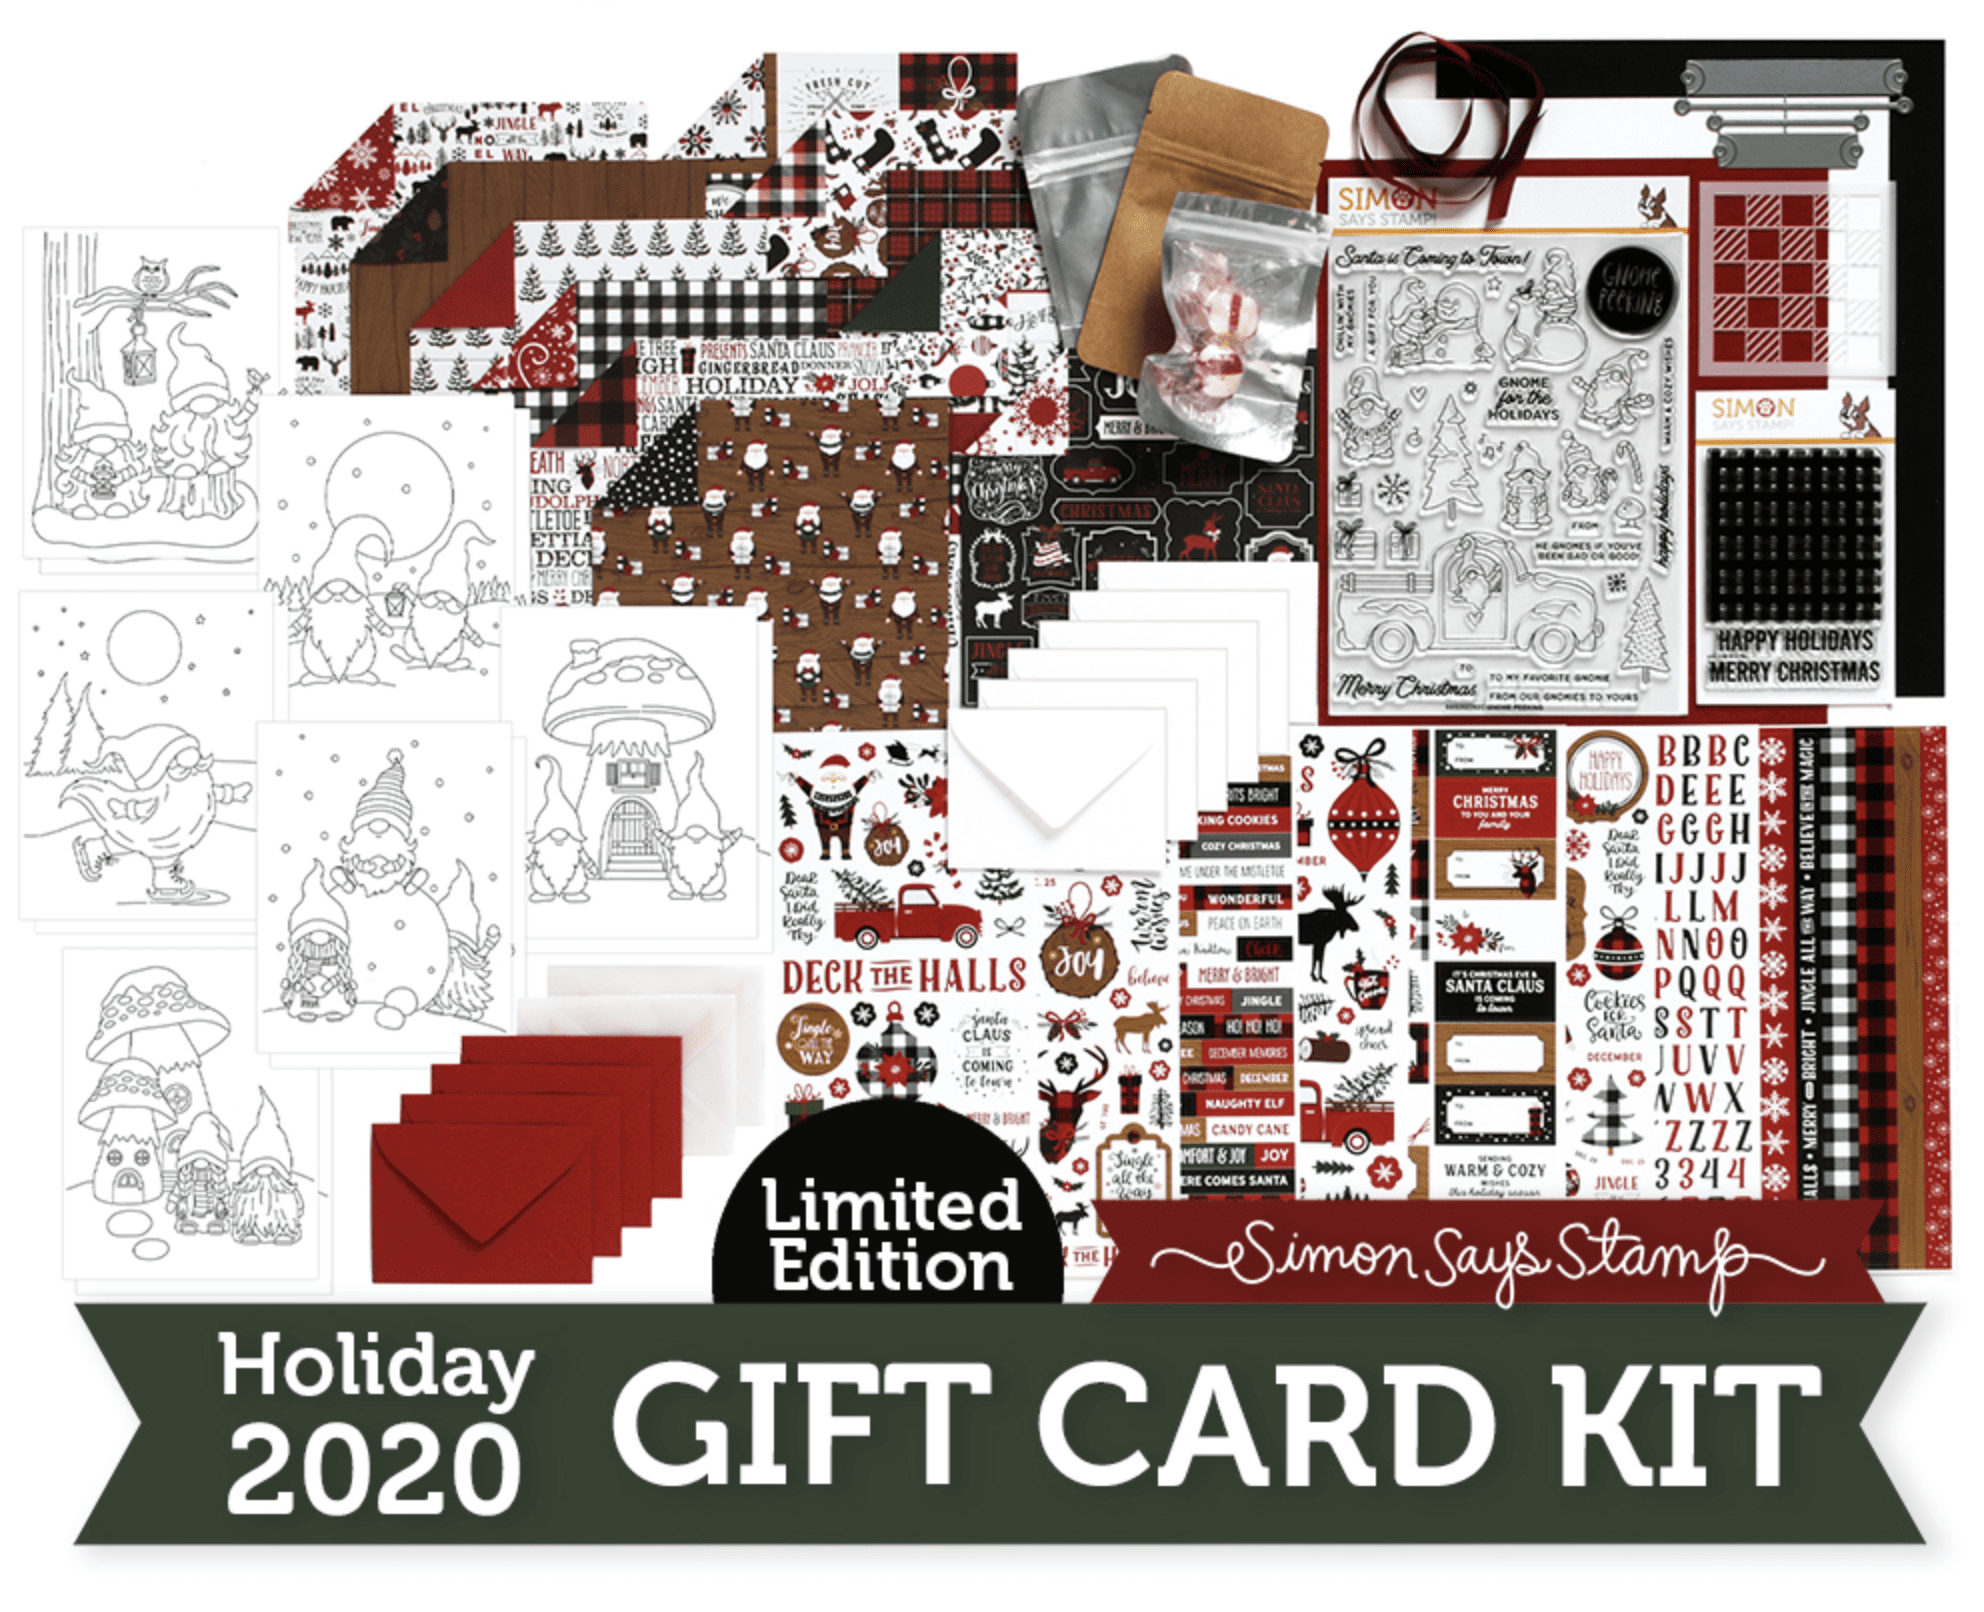 Limited Edition Gift Card Kit